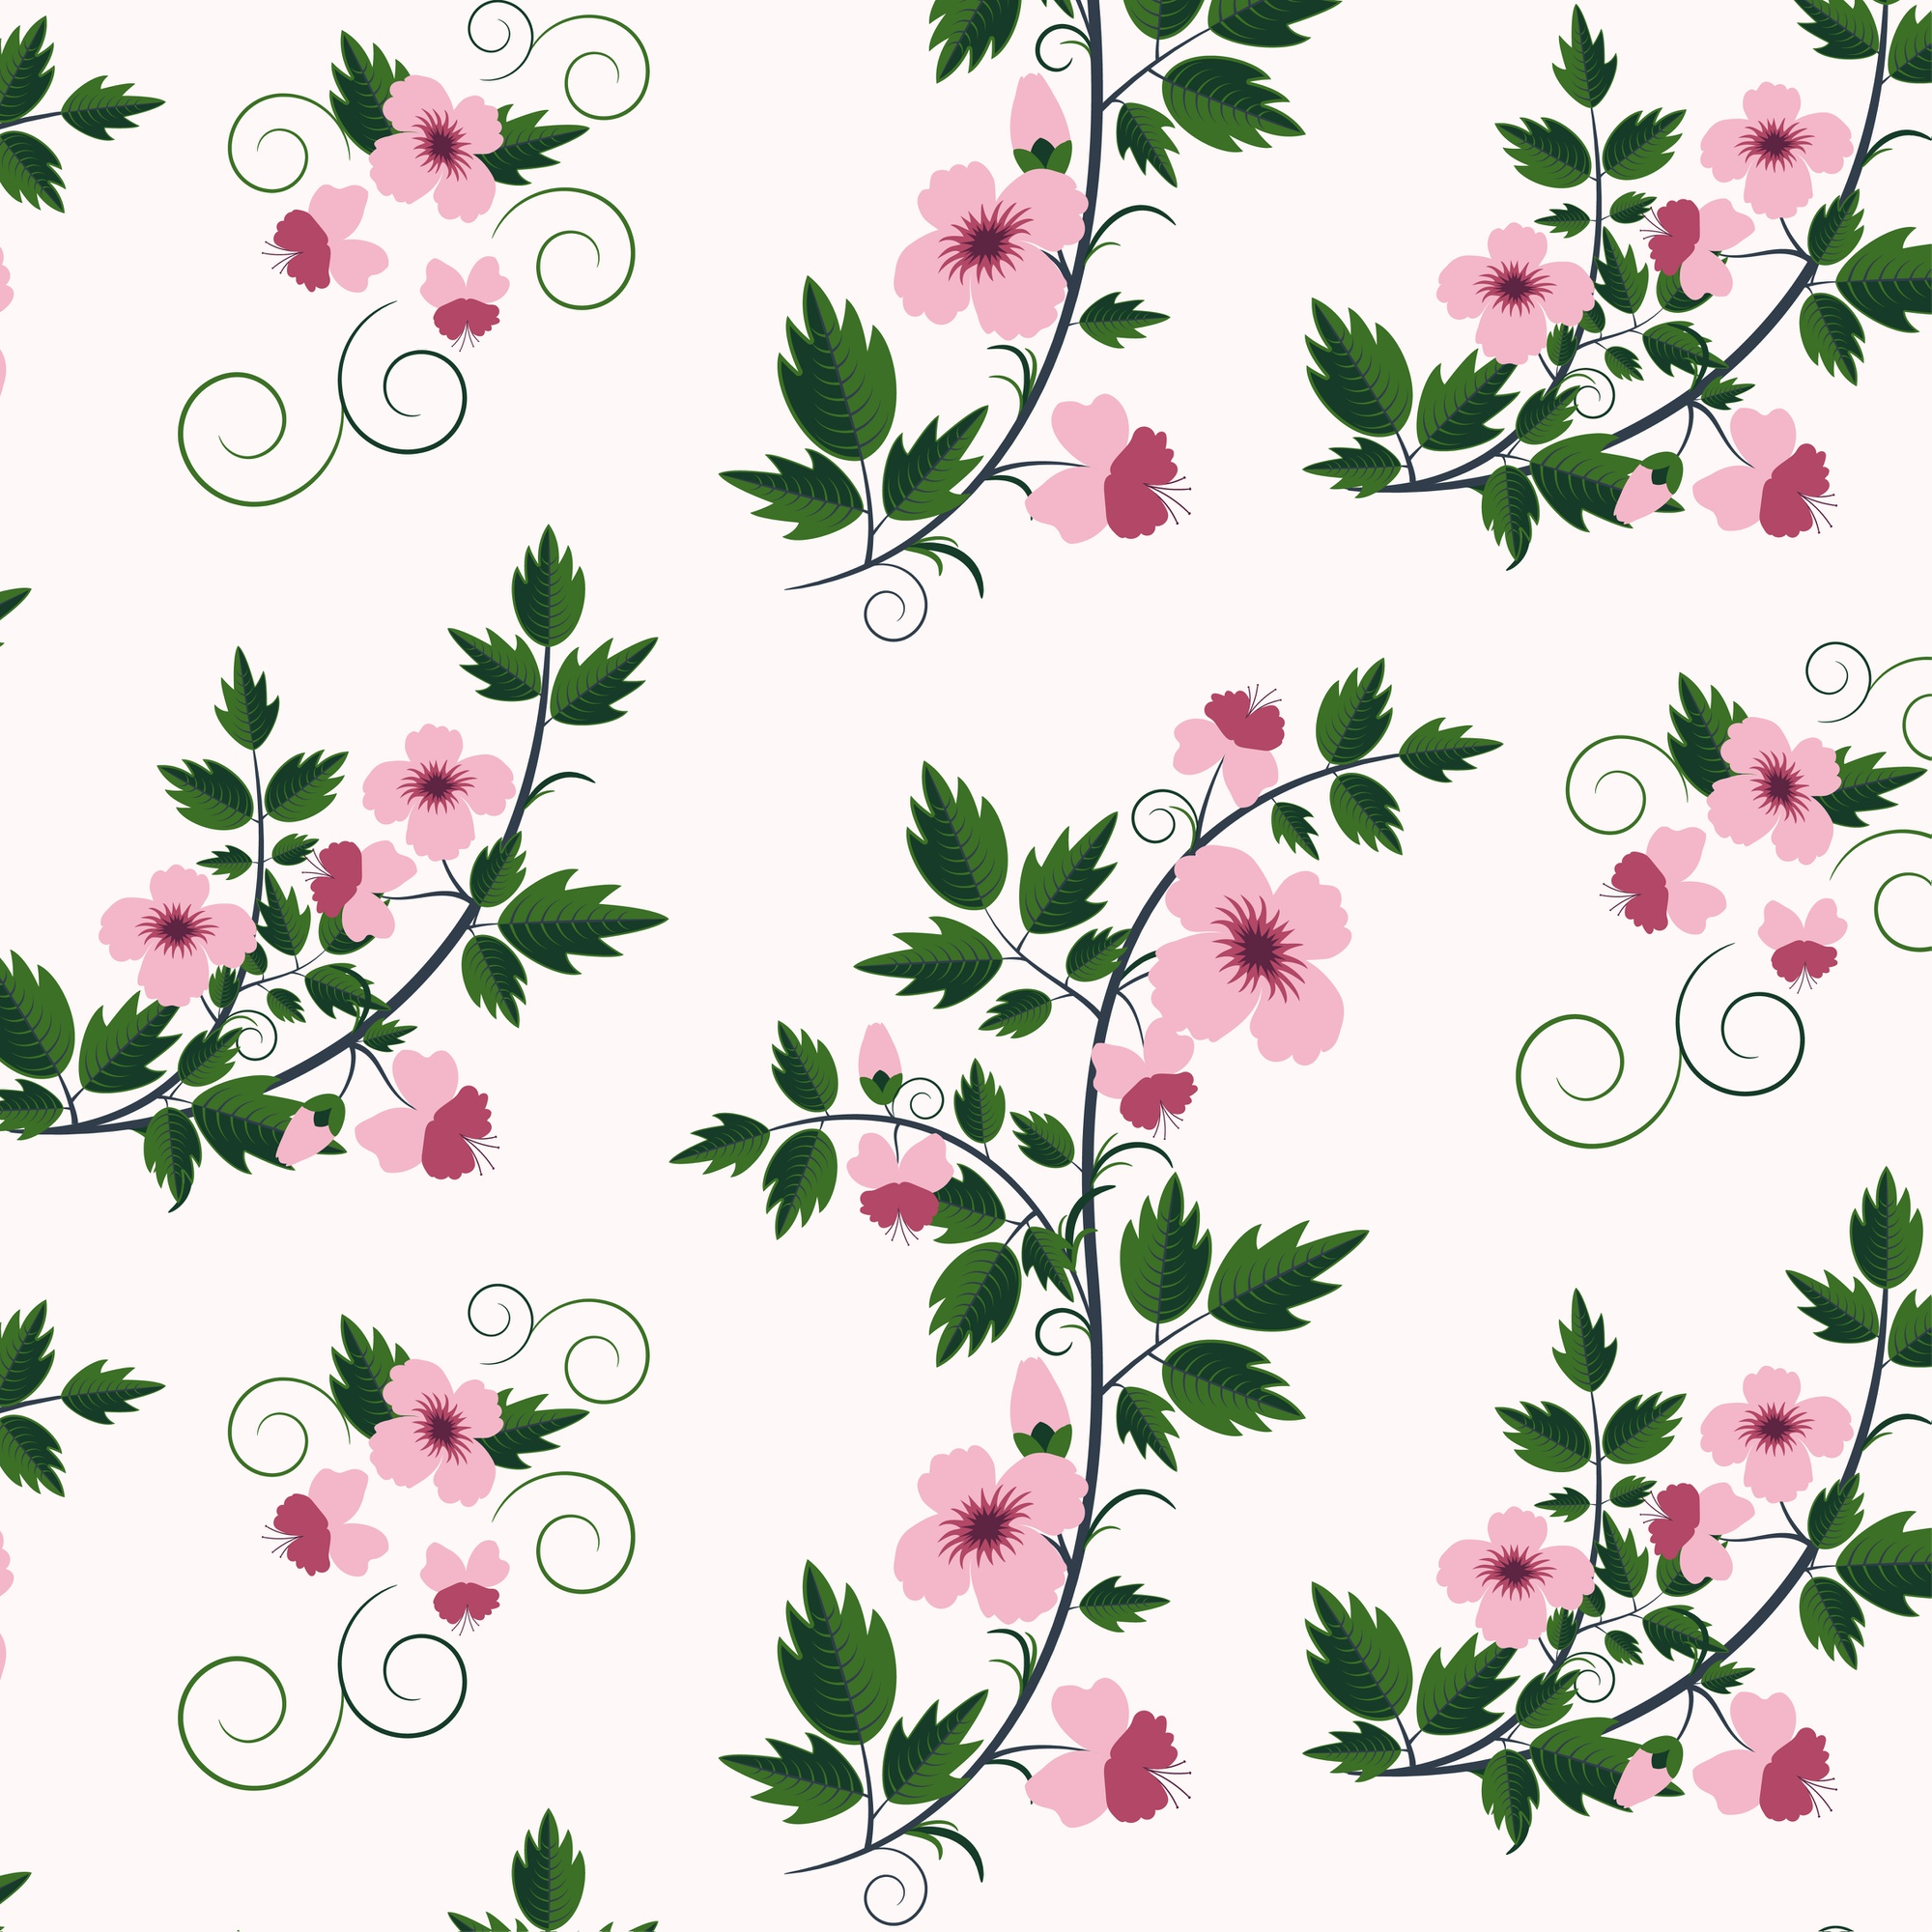 Vector retro floral pattern with flowers